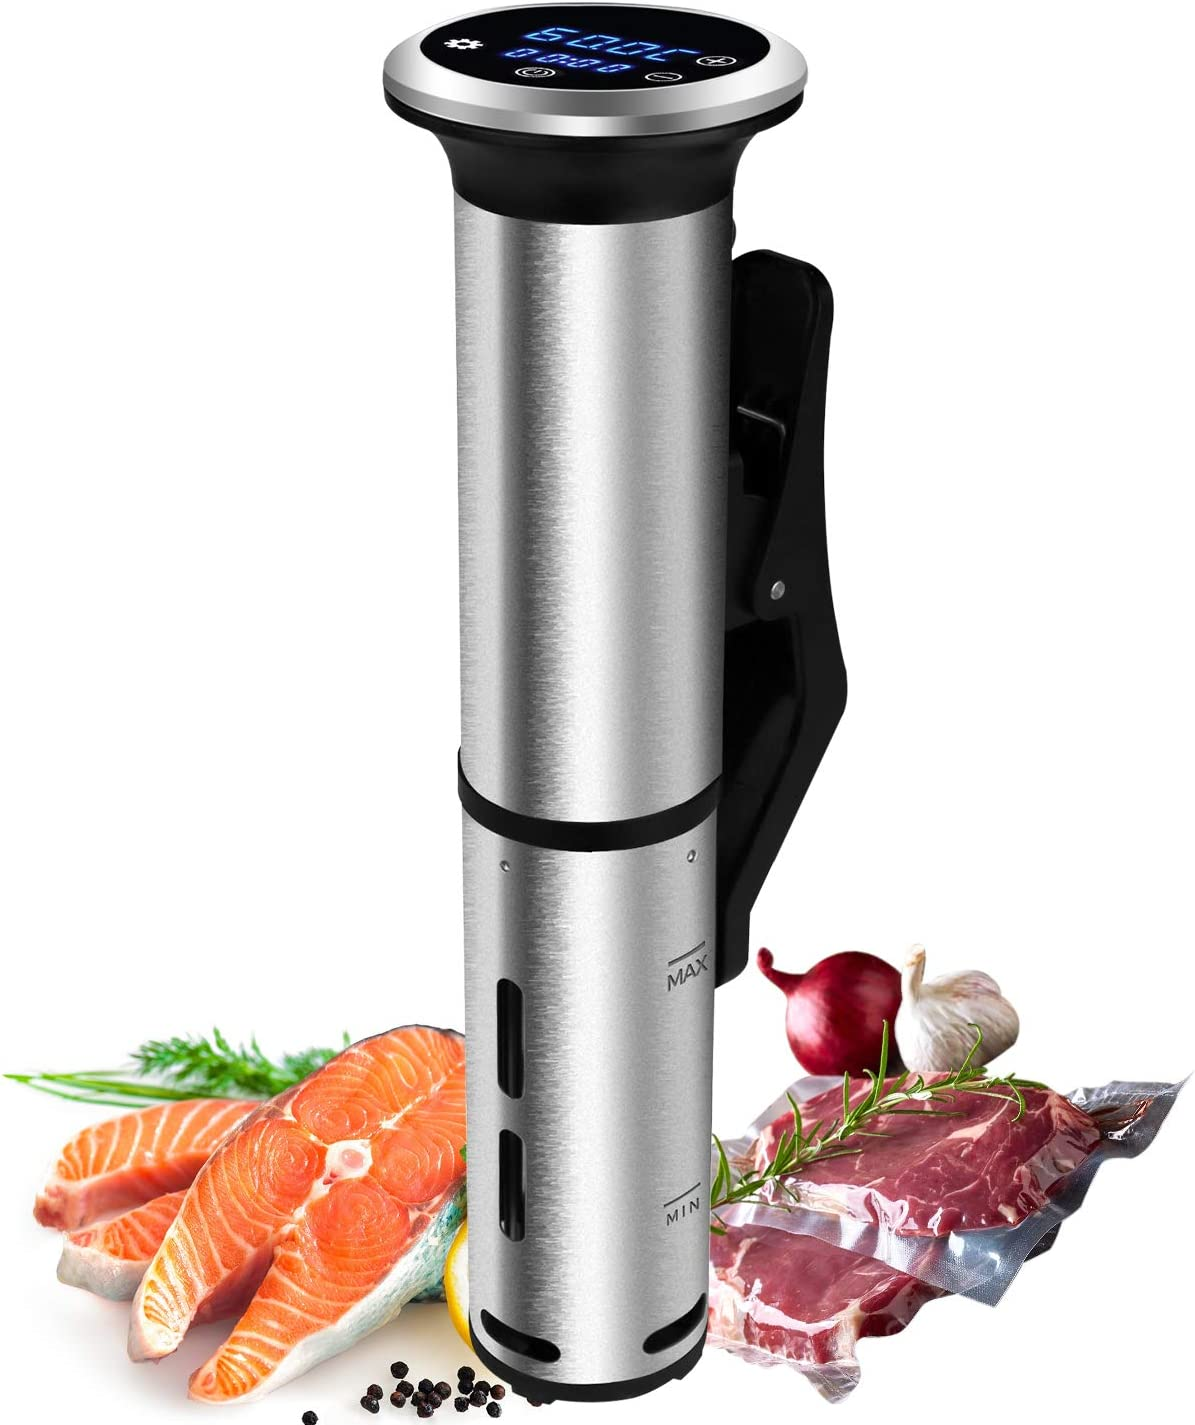 Biolomix Sous Vide Cooker, LED Thermal Immersion Circulator for Kitchen,1000 Watts,Stainless Steel IPX7 Waterproof,Precise Timer & Temperature,Water Level Protection Alarm,Touch Screen